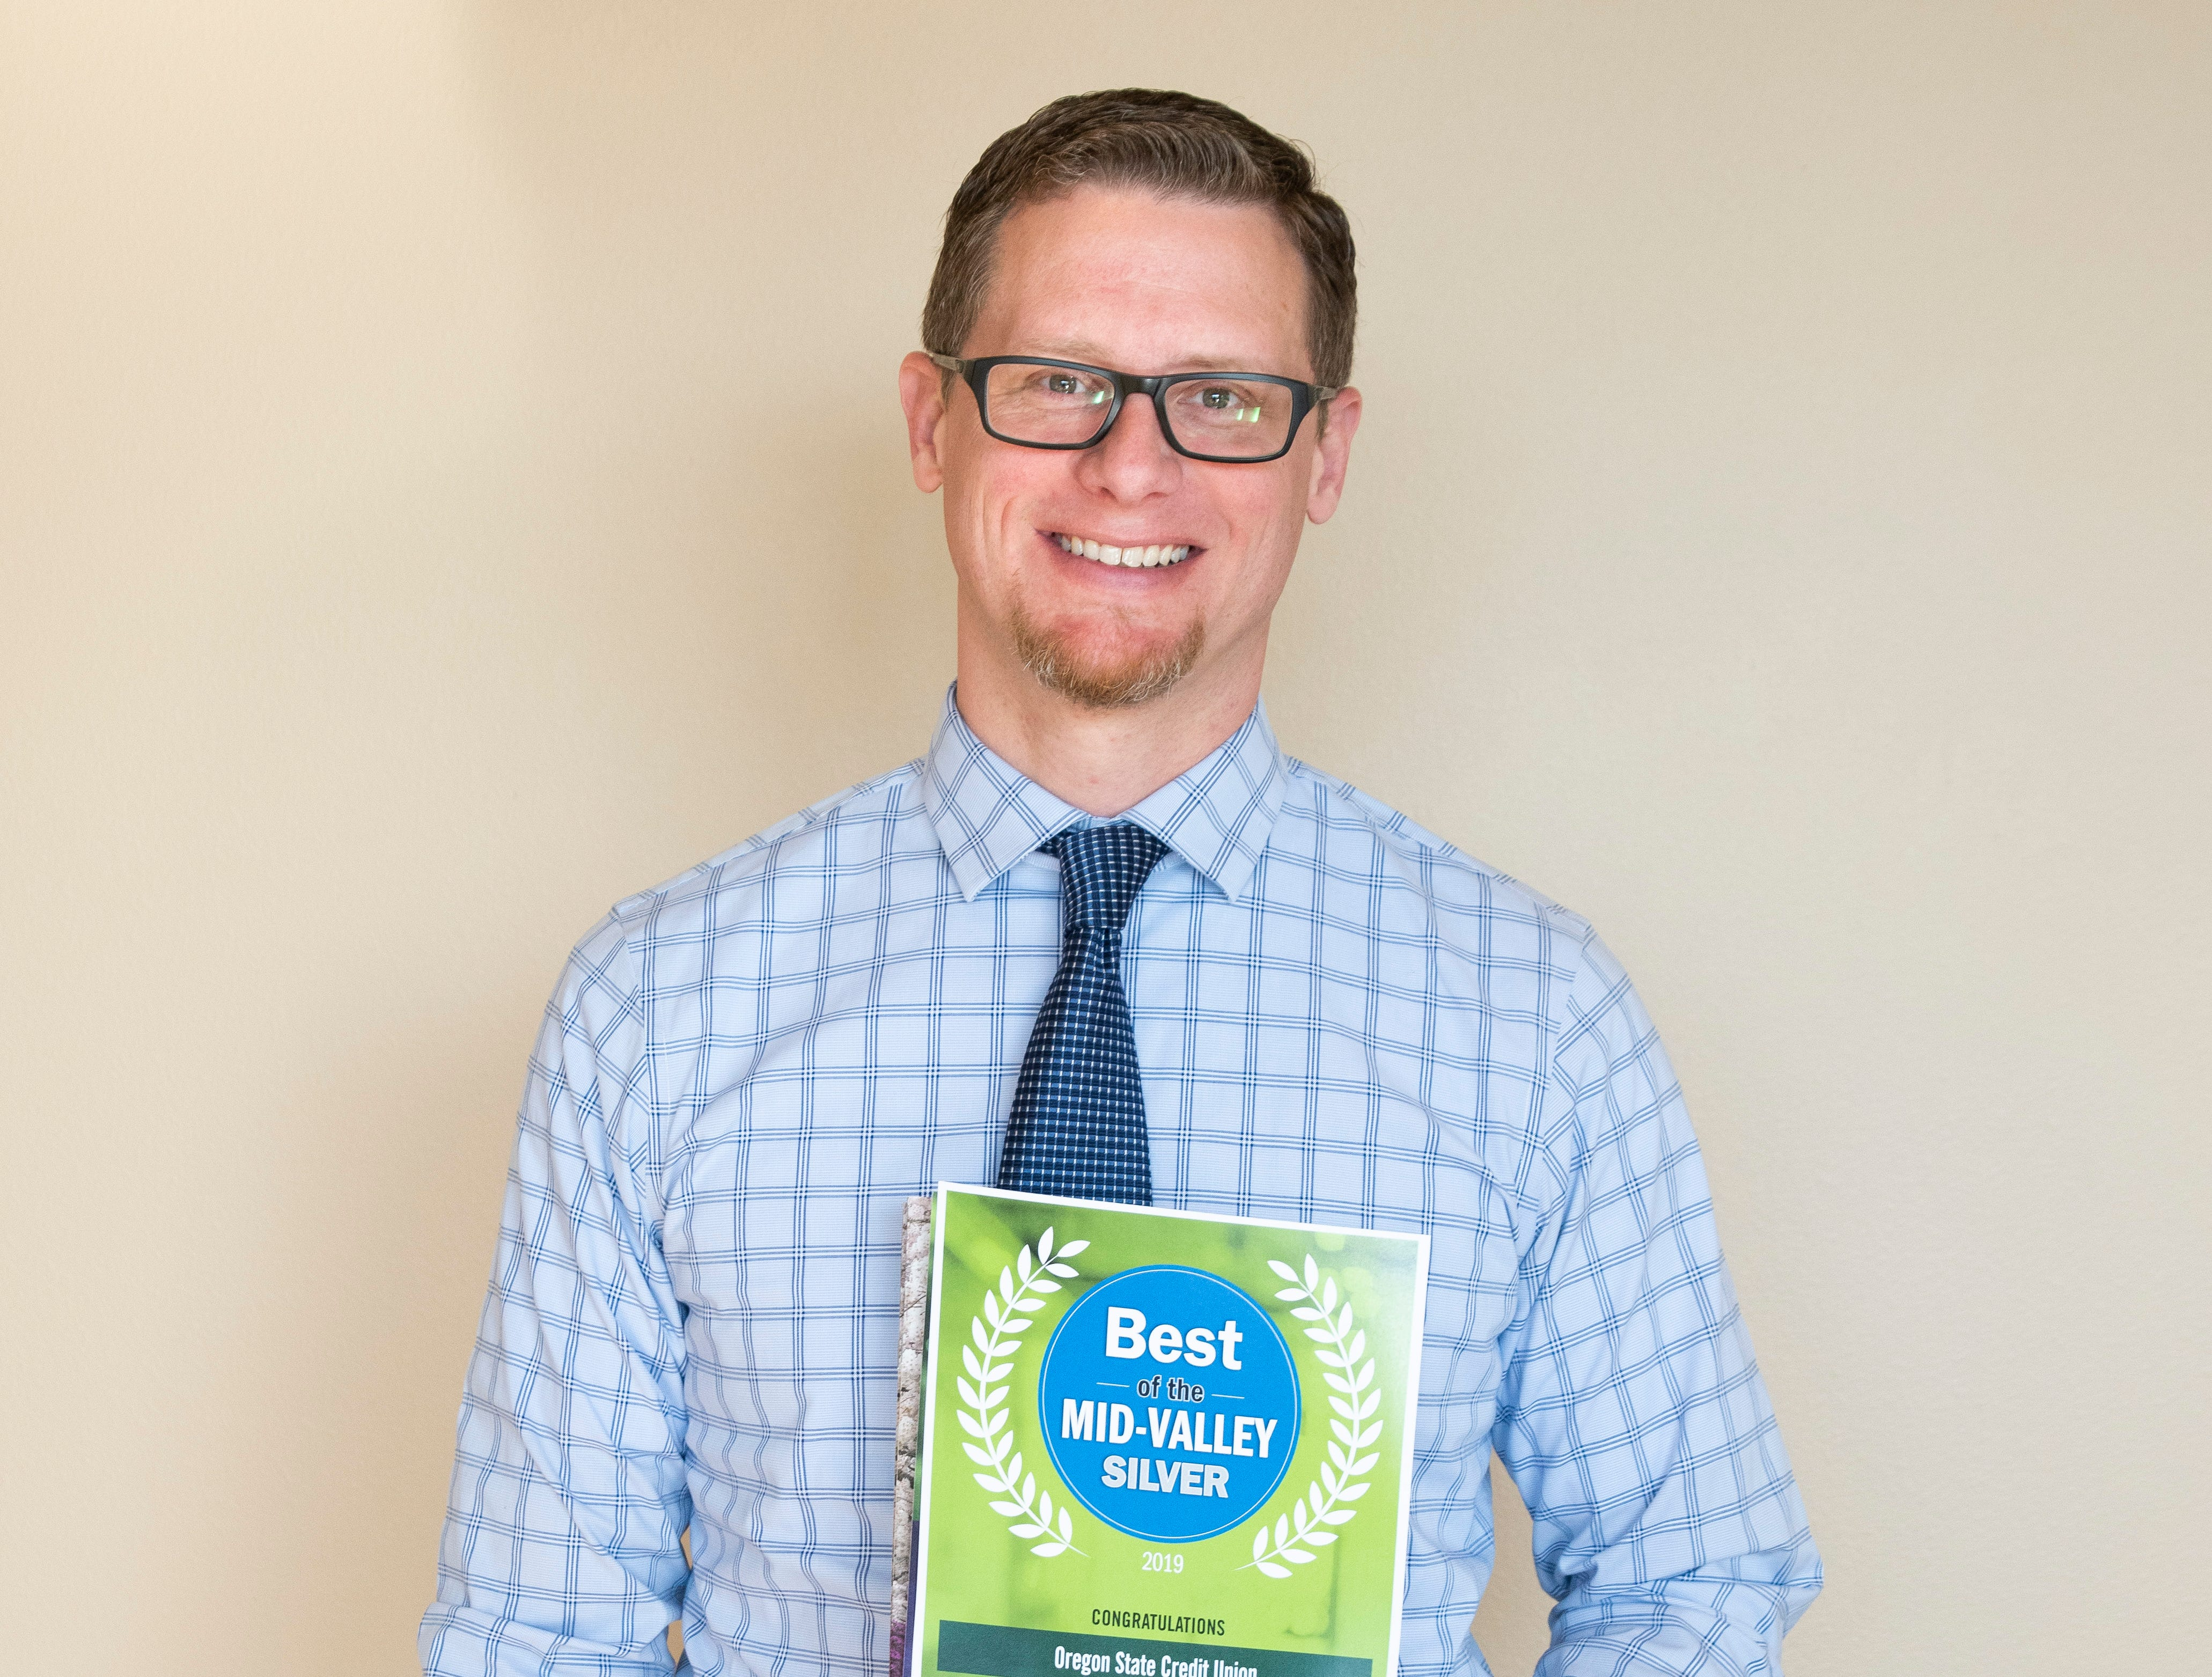 Oregon State Credit Union won silver for Best Credit Union in the 2019 Best of the Mid-Valley.